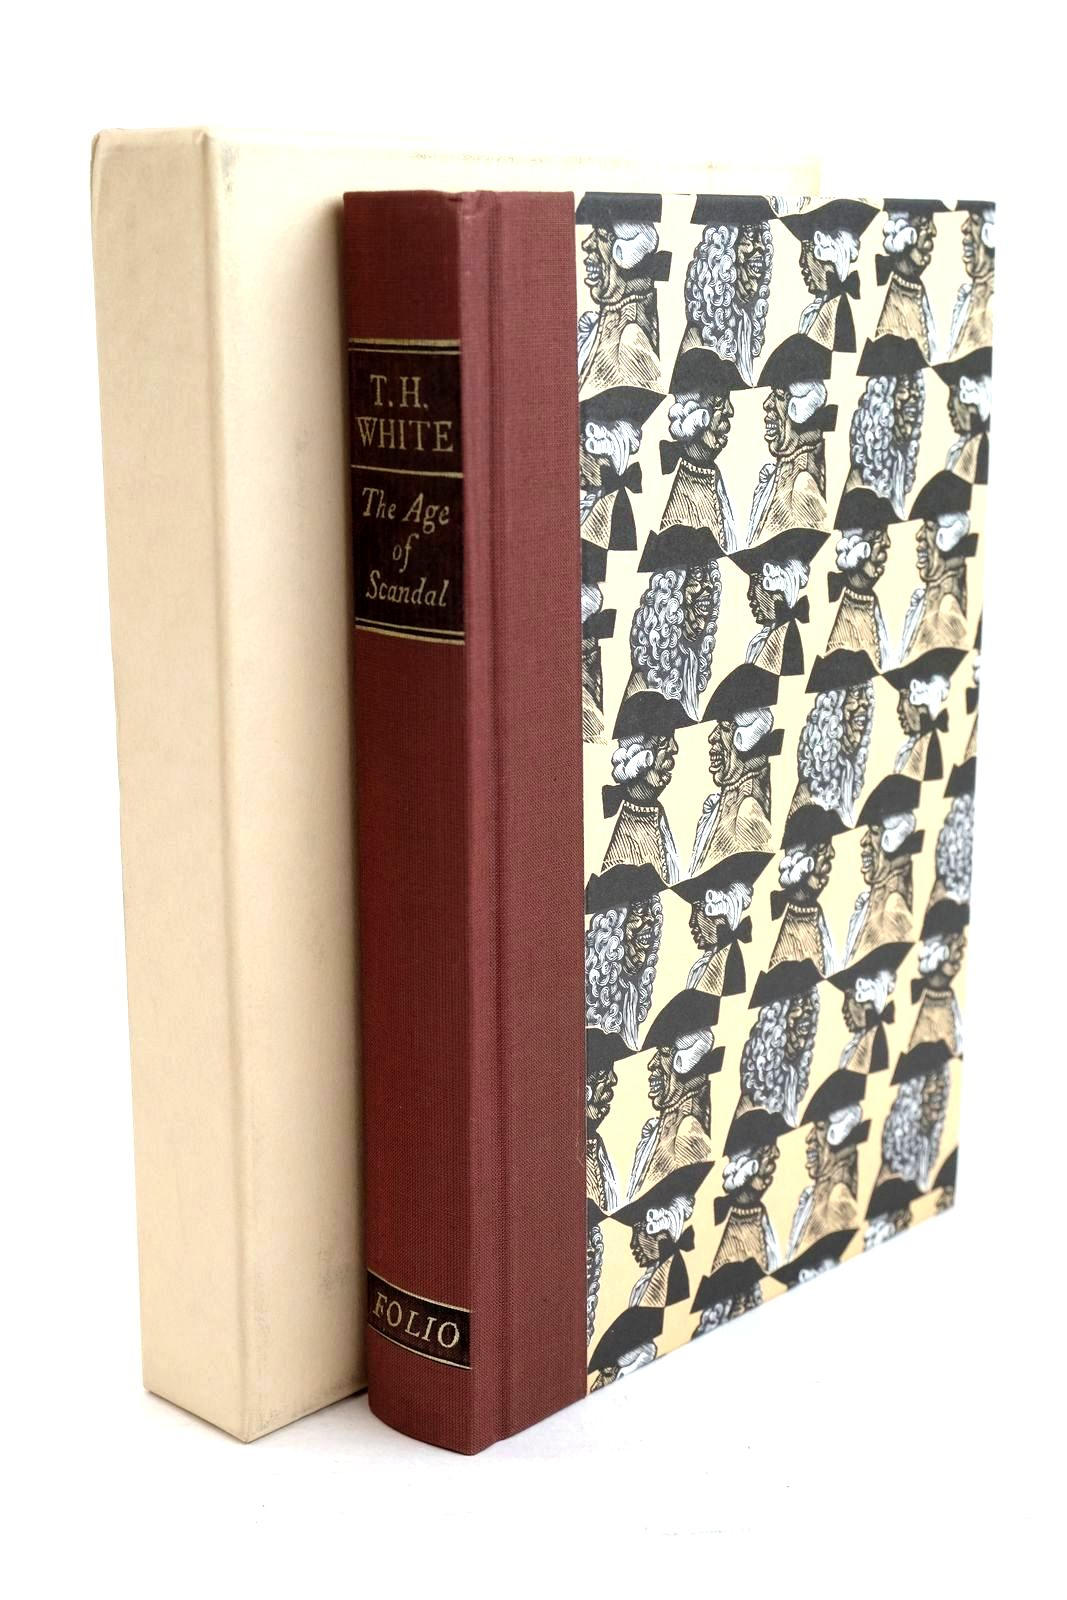 Photo of THE AGE OF SCANDAL: AN EXCURSION THROUGH A MINOR PERIOD written by White, T.H. published by Folio Society (STOCK CODE: 1320565)  for sale by Stella & Rose's Books